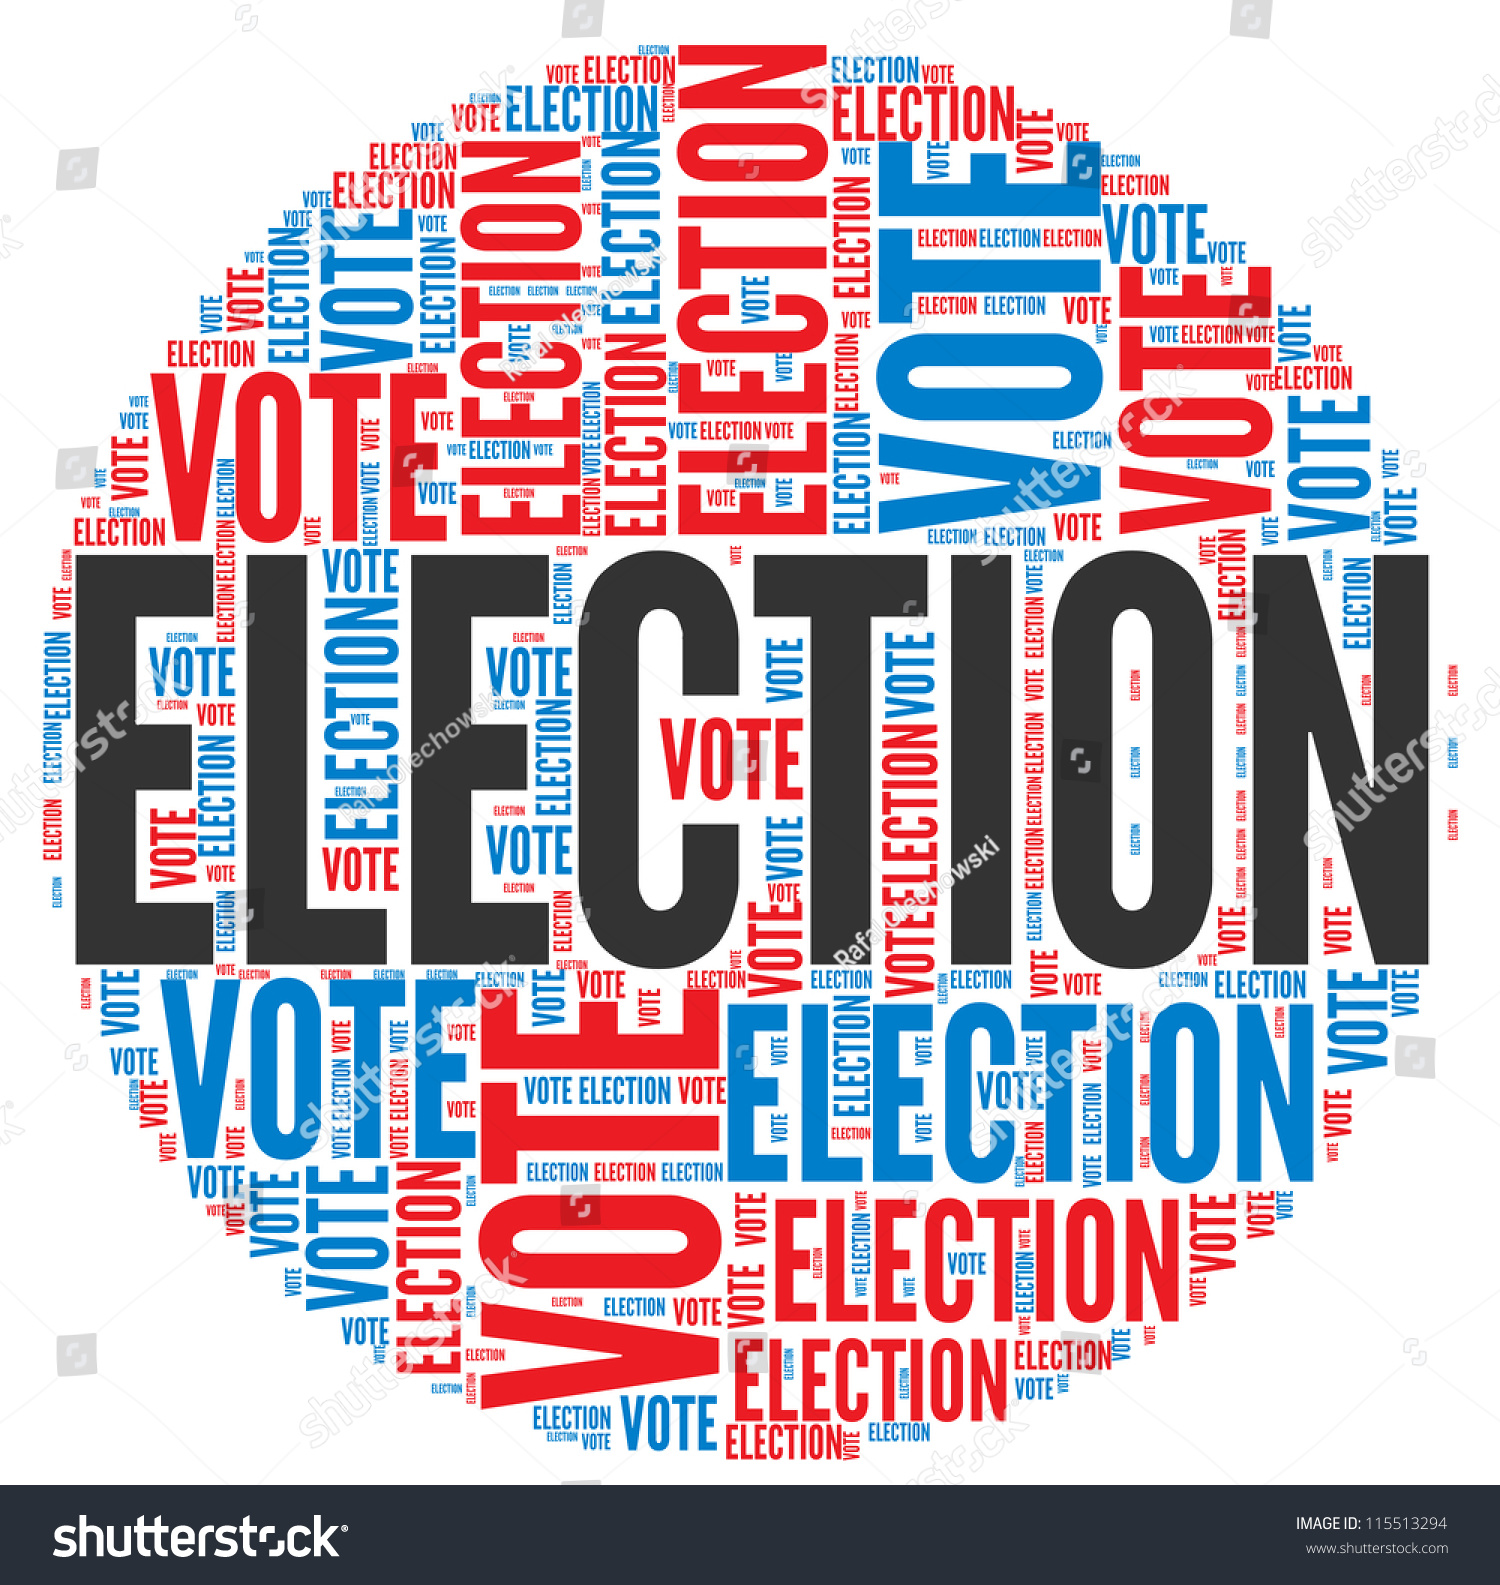 Image result for voting images